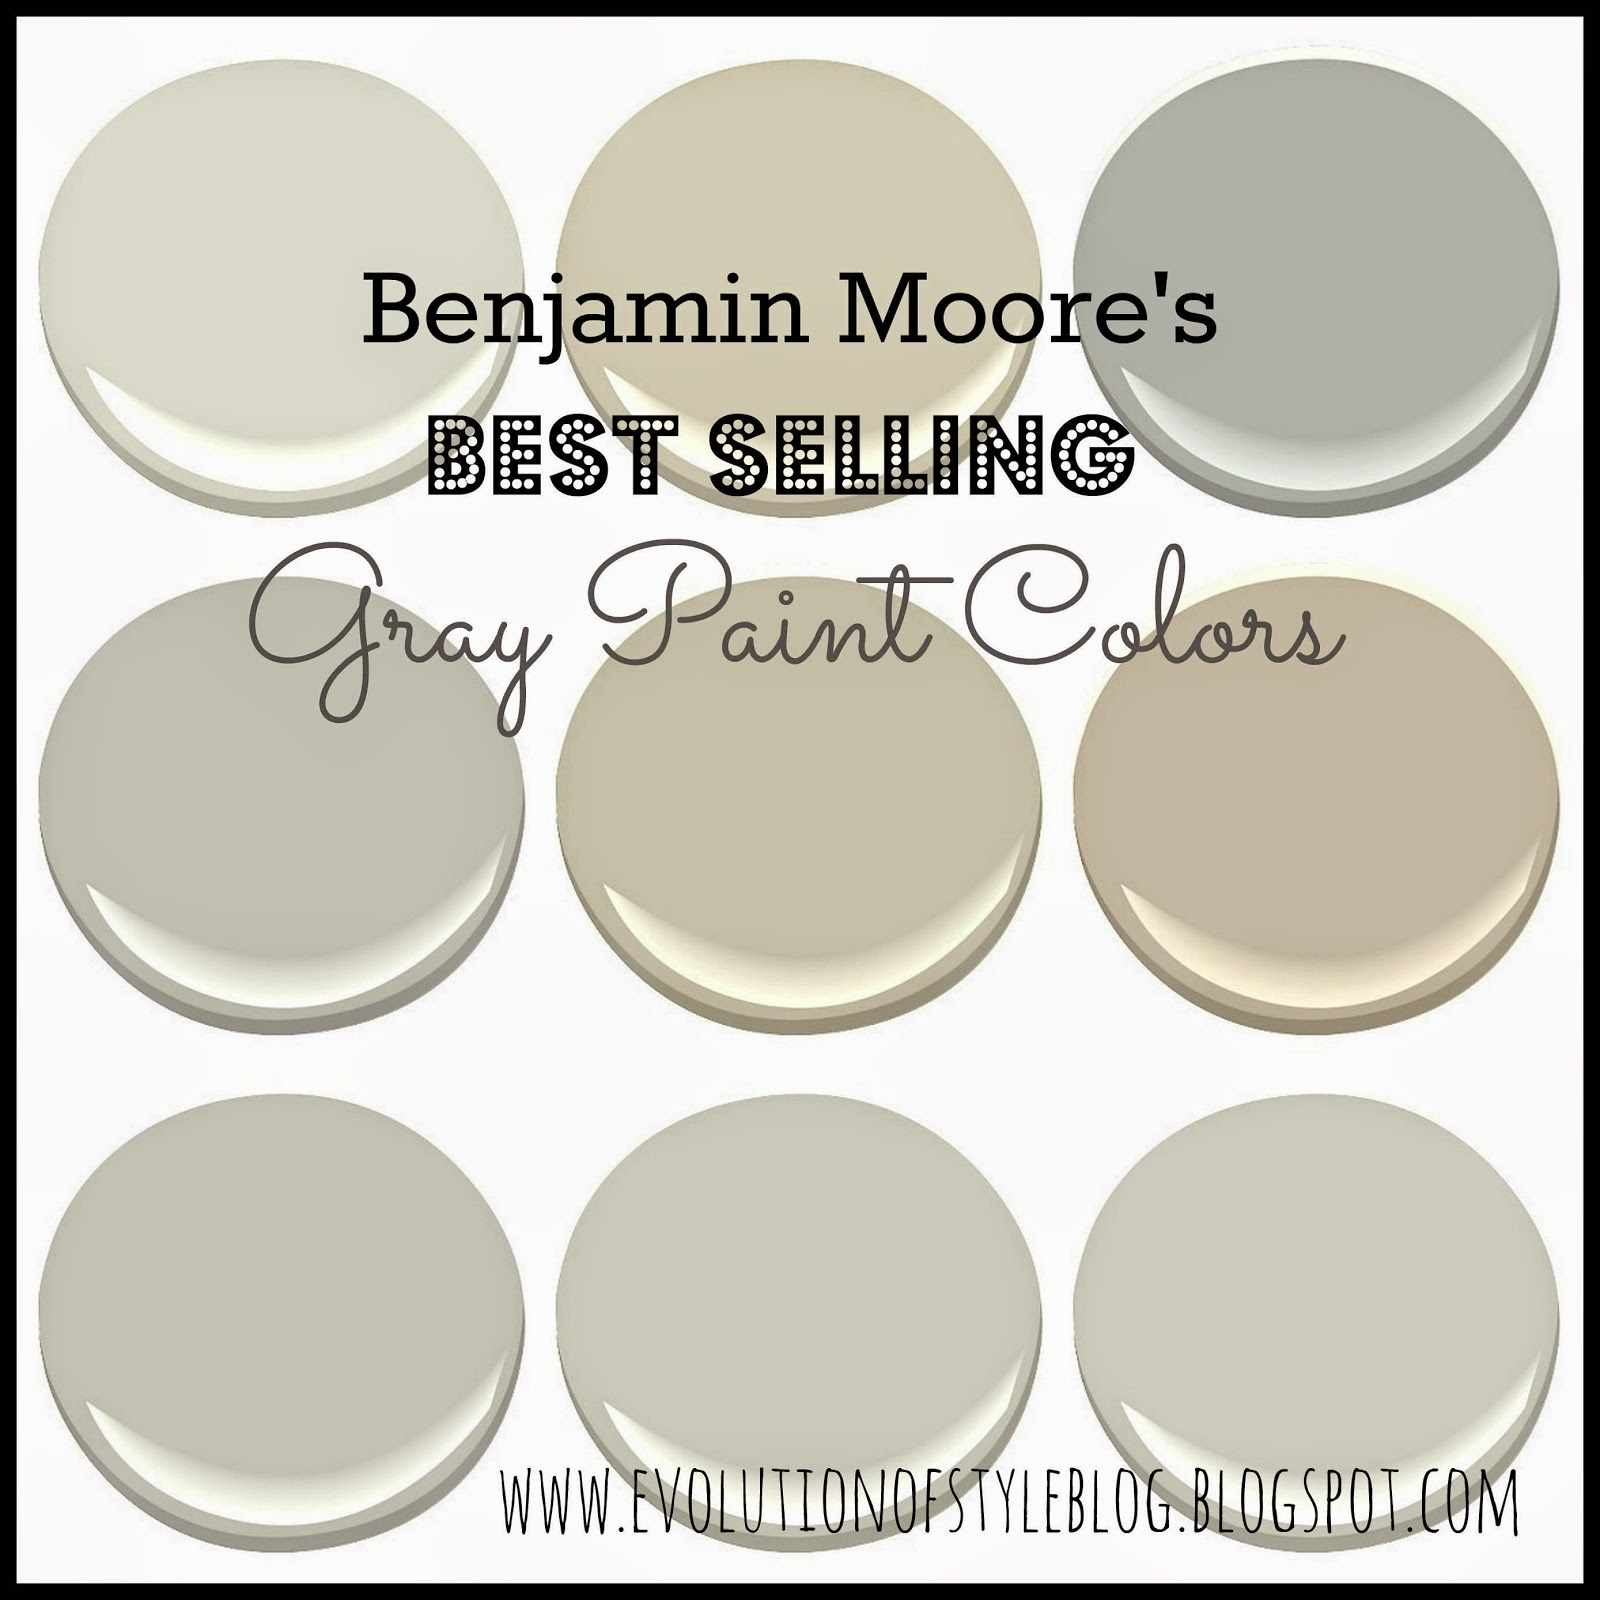 Benjamin moore 39 s best selling grays evolution of style - Best light gray paint color for bathroom ...